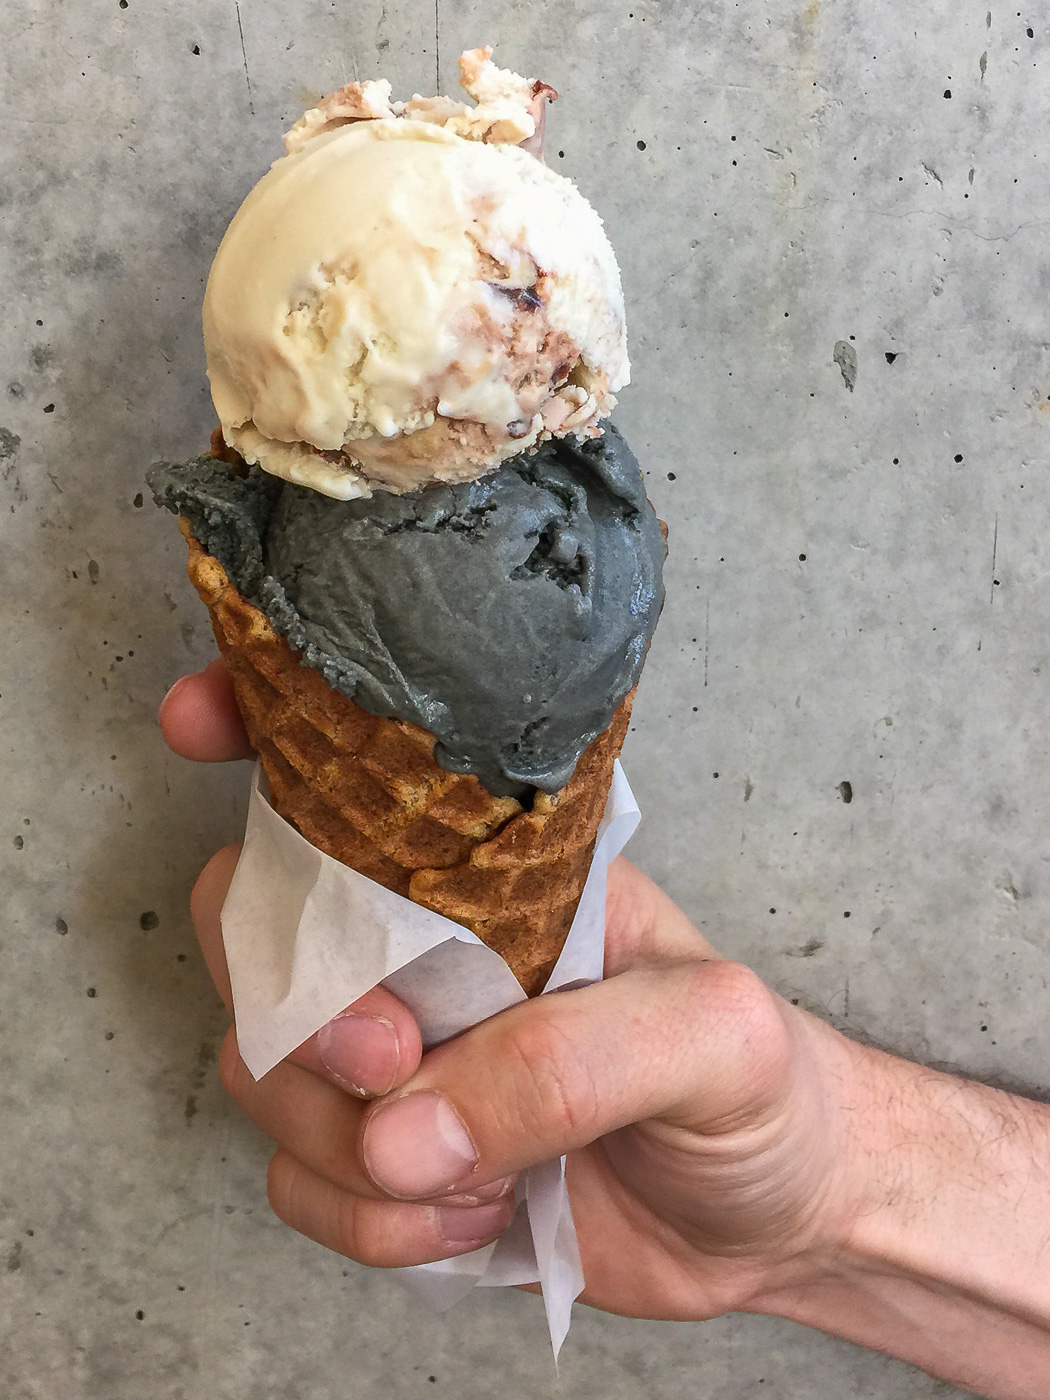 Tahini Chocolate and Salted Caramel Ash ice cream